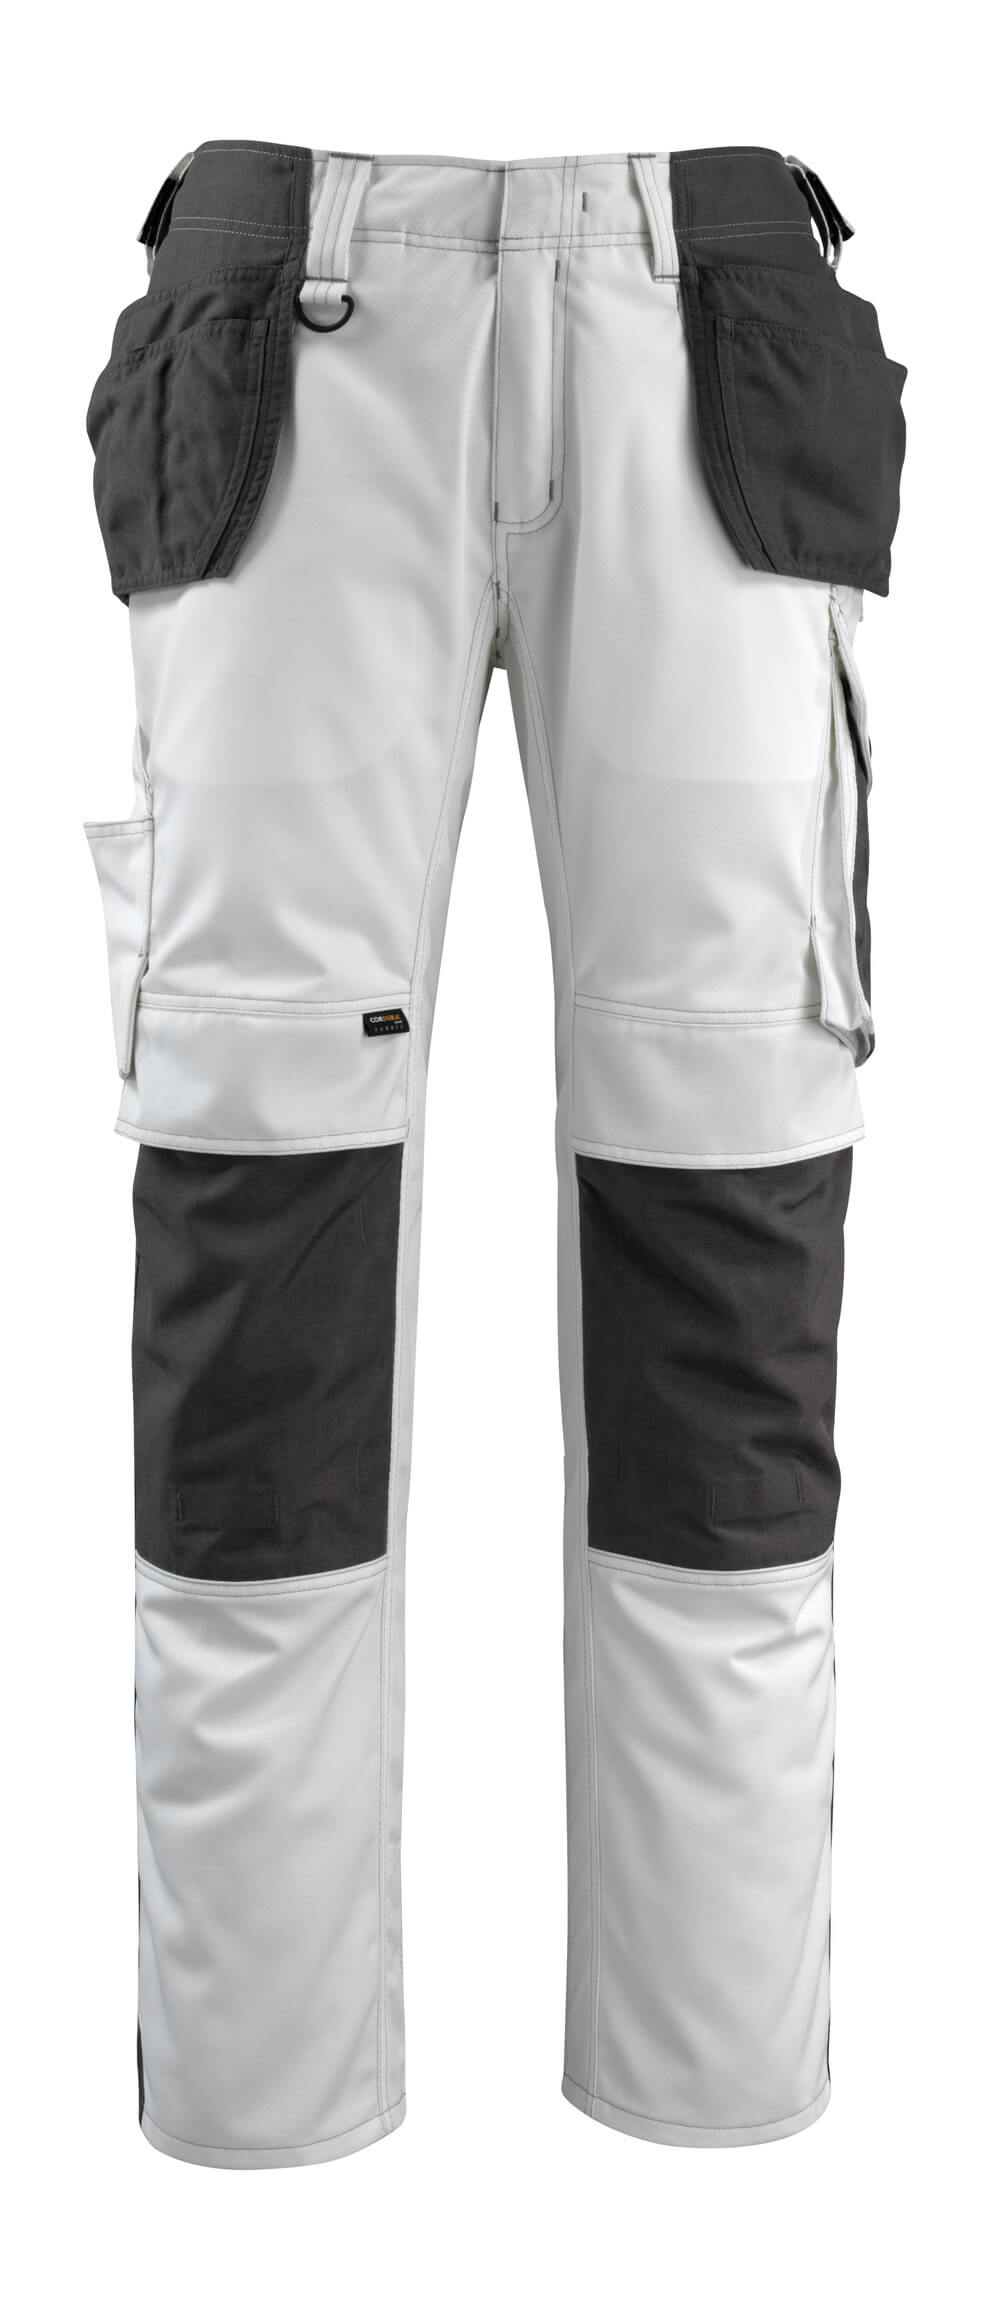 14031-203-0618 Trousers with holster pockets - white/dark anthracite